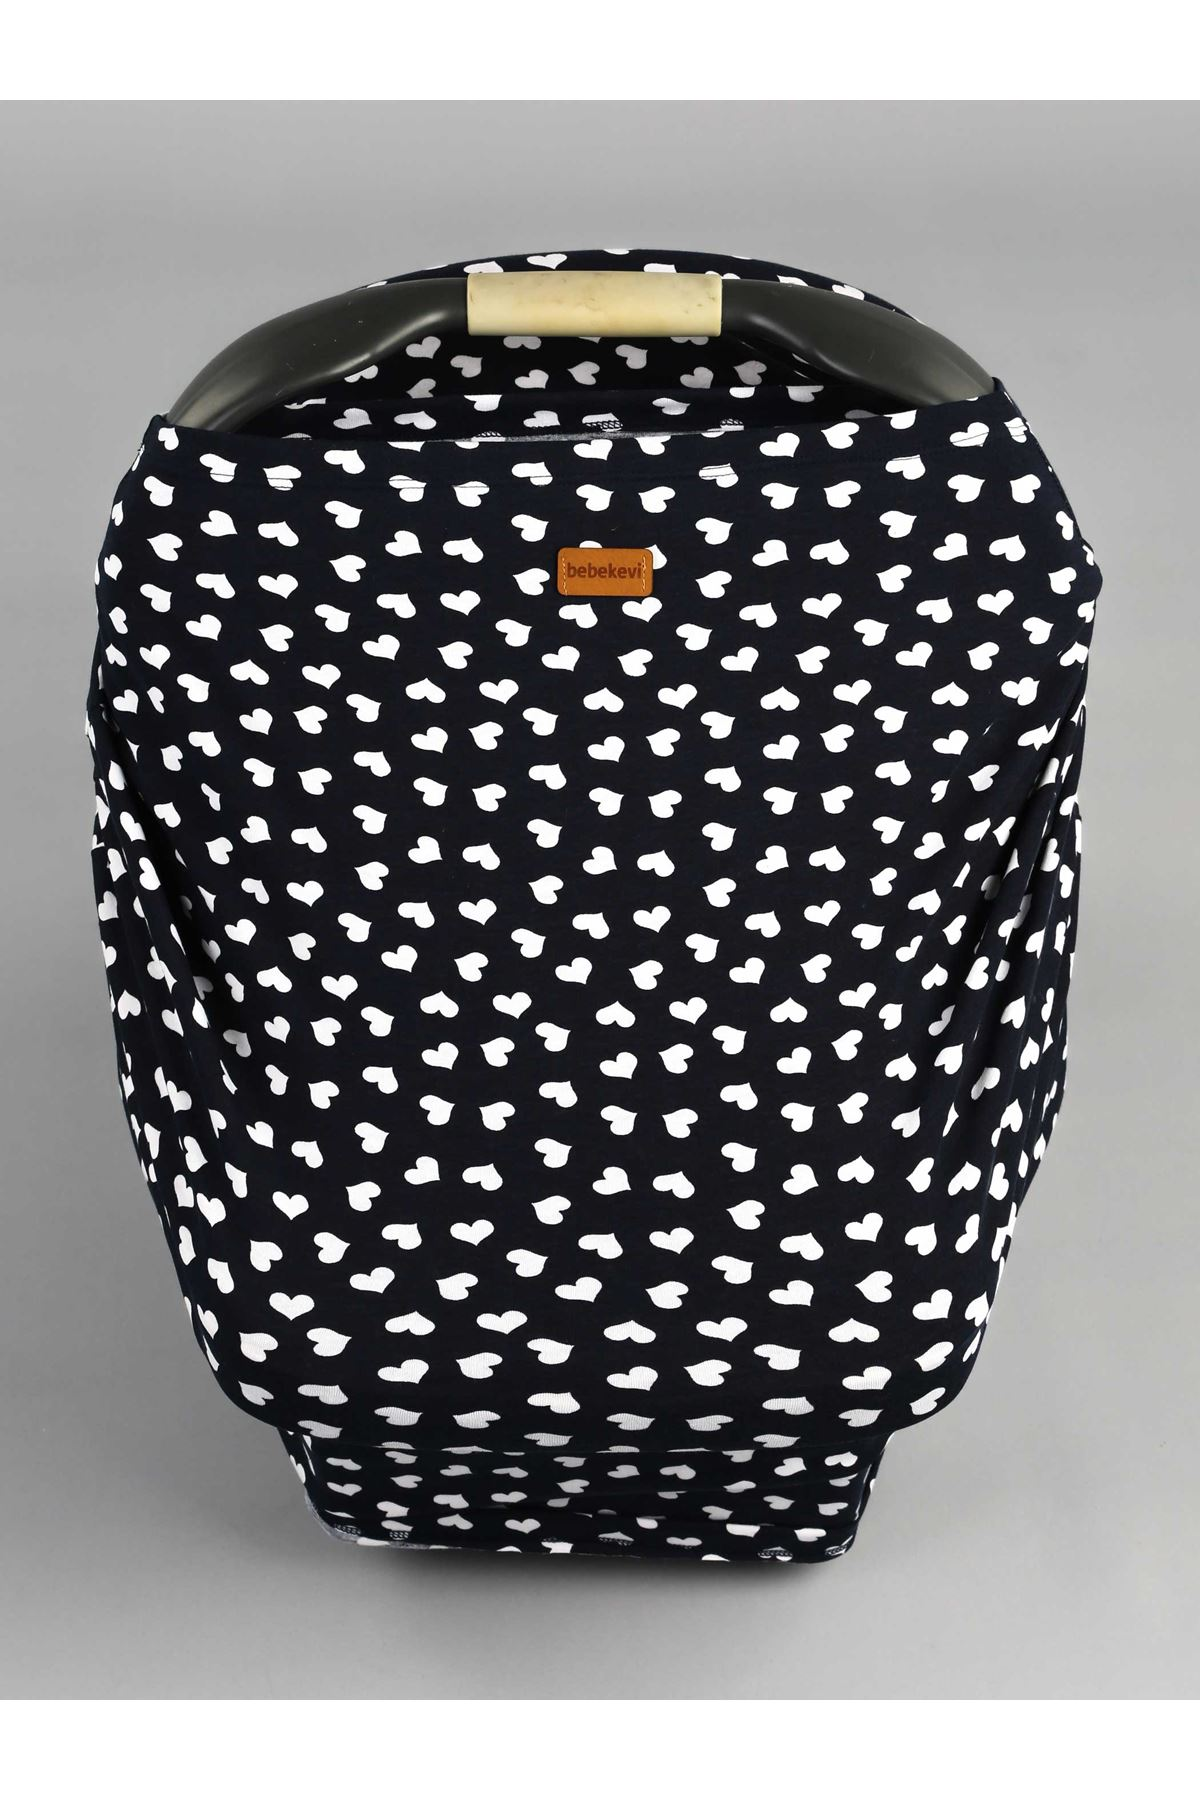 Navy blue mother baby breastfeeding cover stroller sun cover mosquito net babies anti-rain models